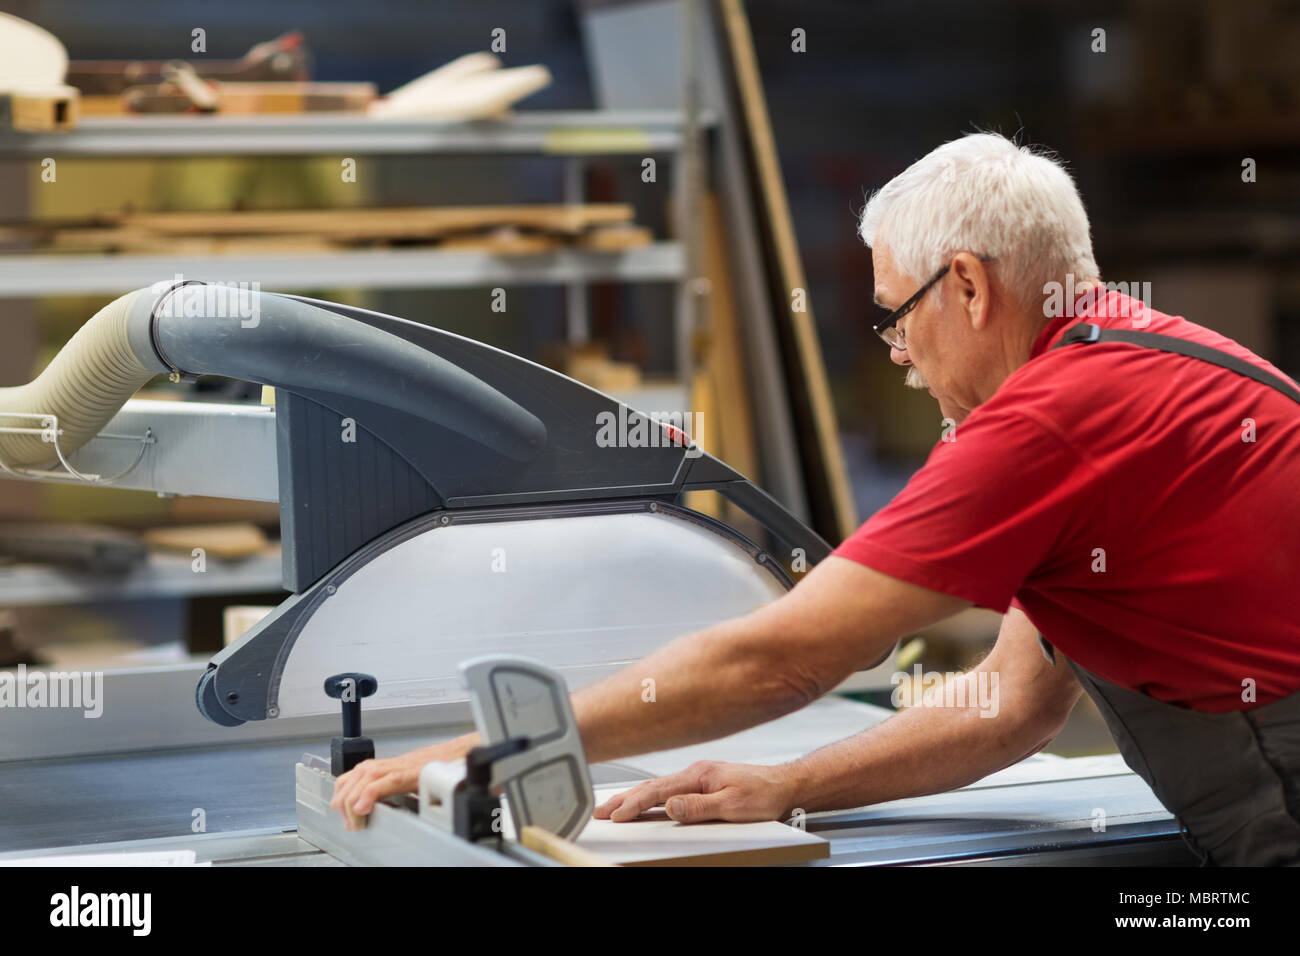 carpenter with panel saw and fibreboard at factory - Stock Image